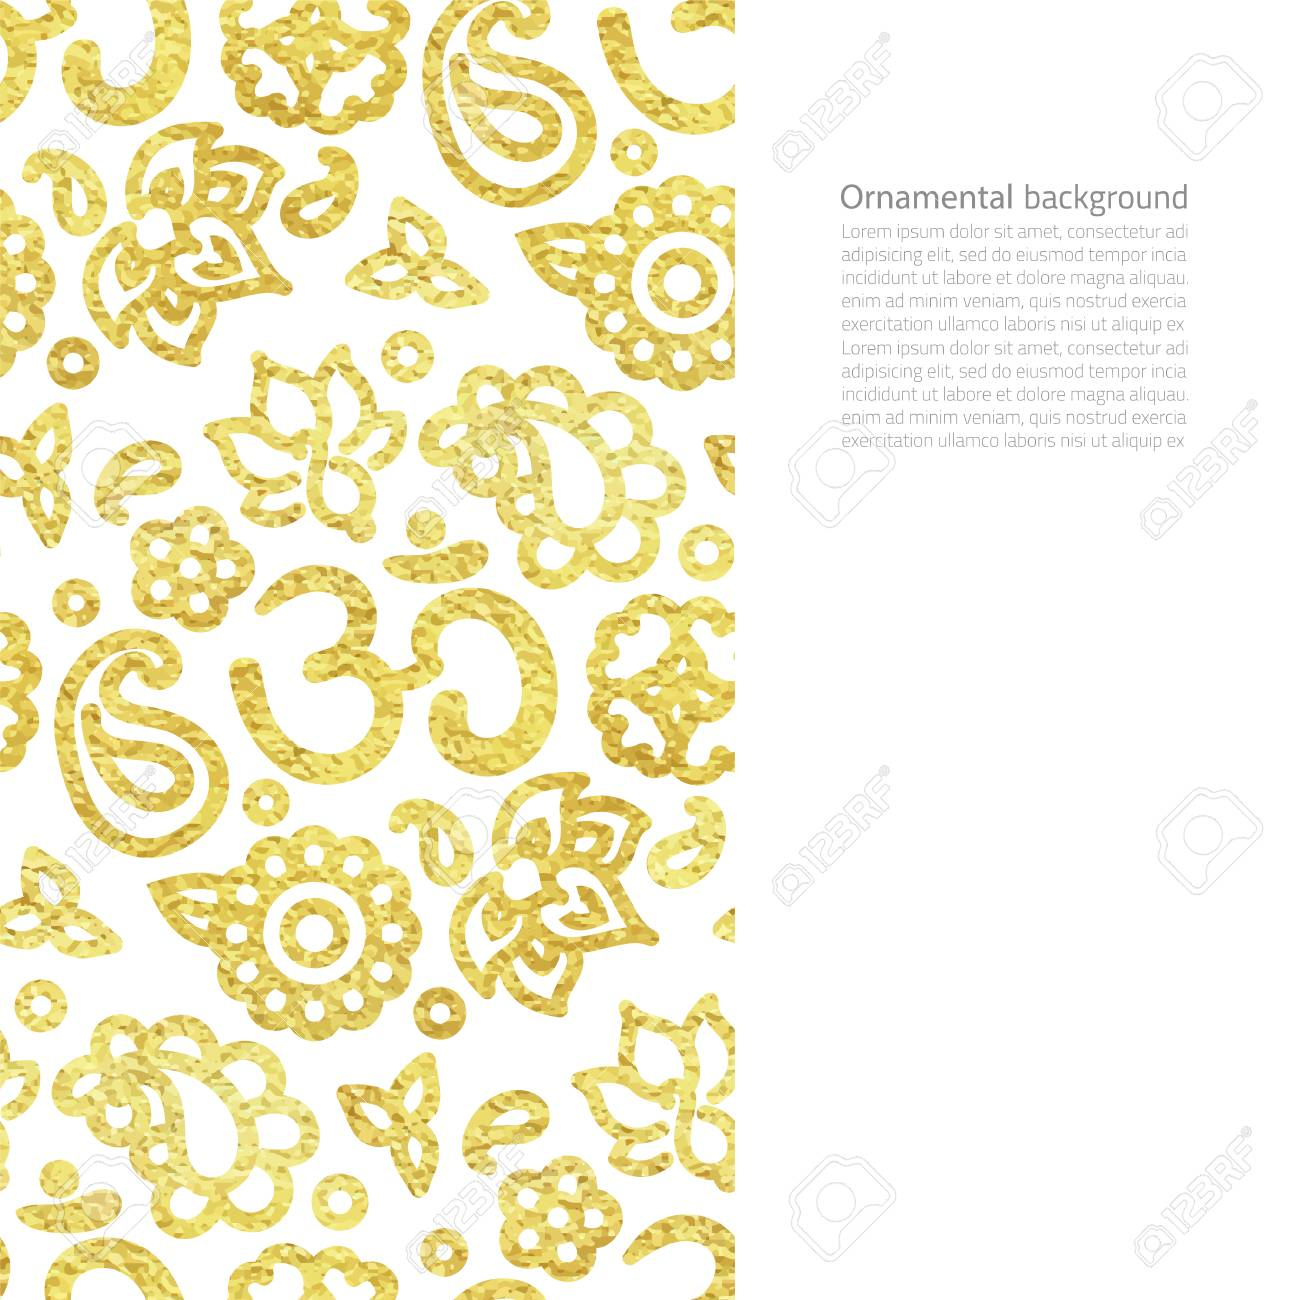 Vector Card With Realistic Golden Foil Border With Om Symbol